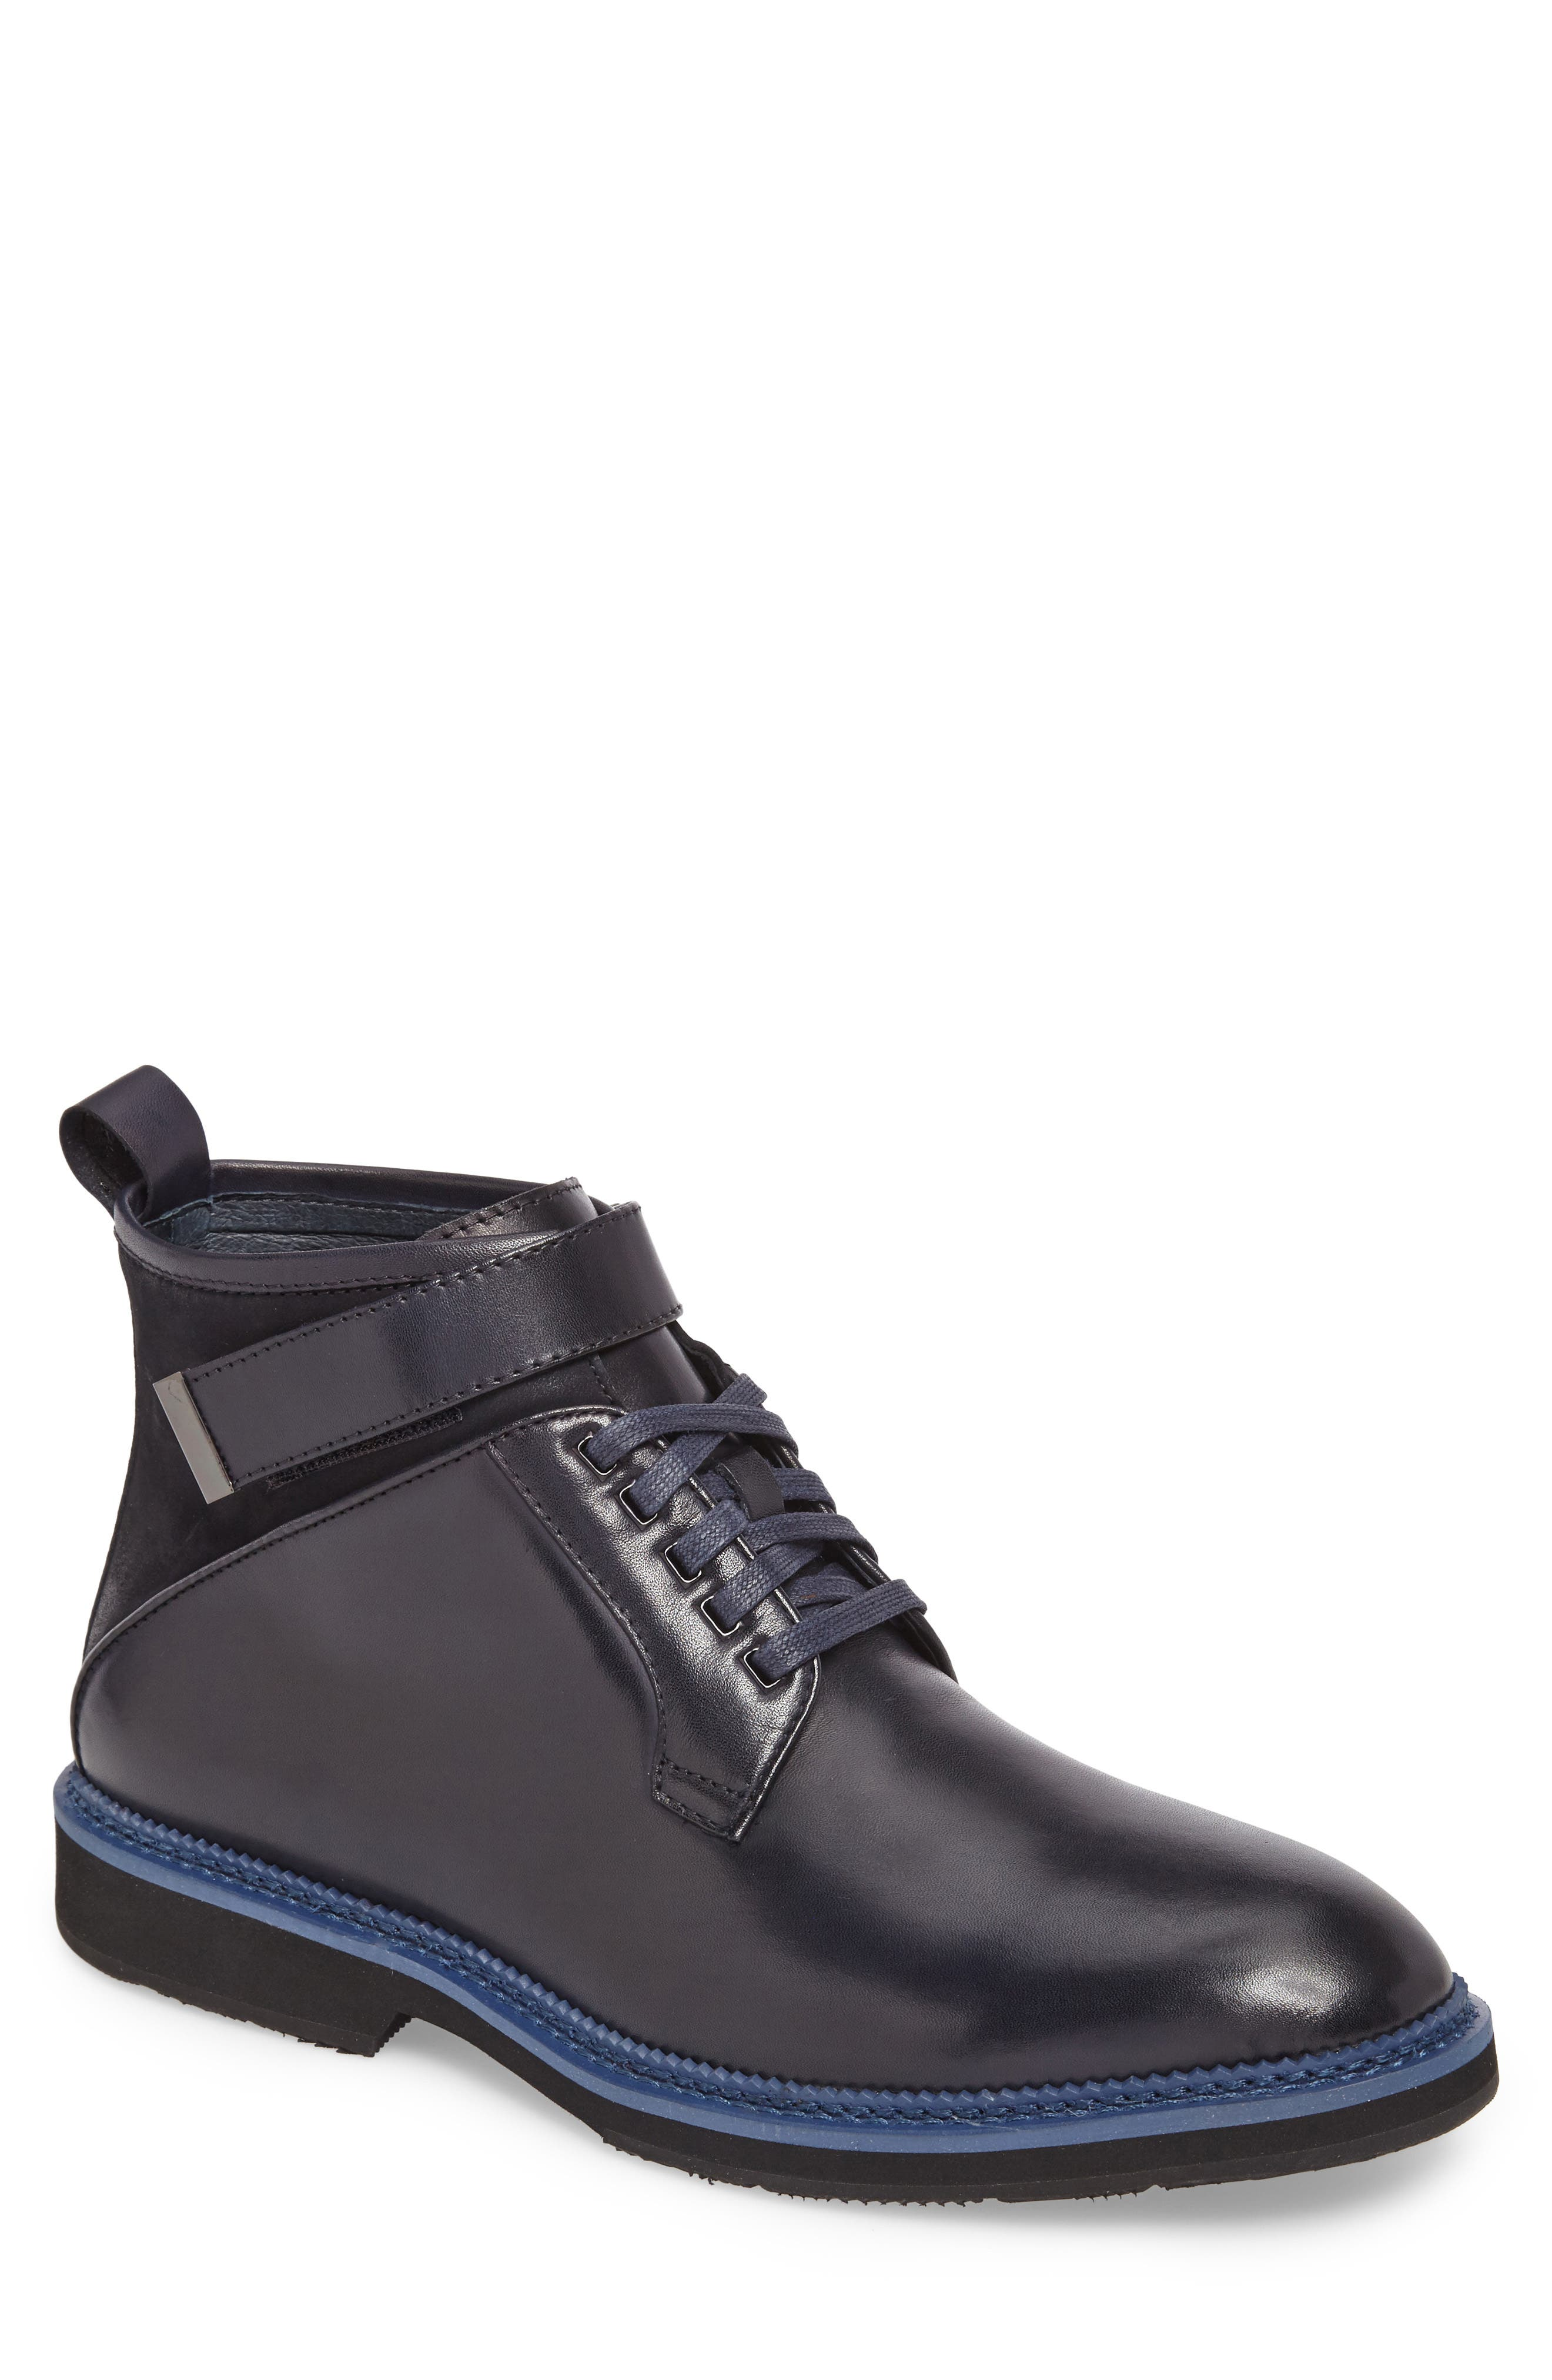 Ginko Plain Toe Boot,                         Main,                         color, Navy Leather